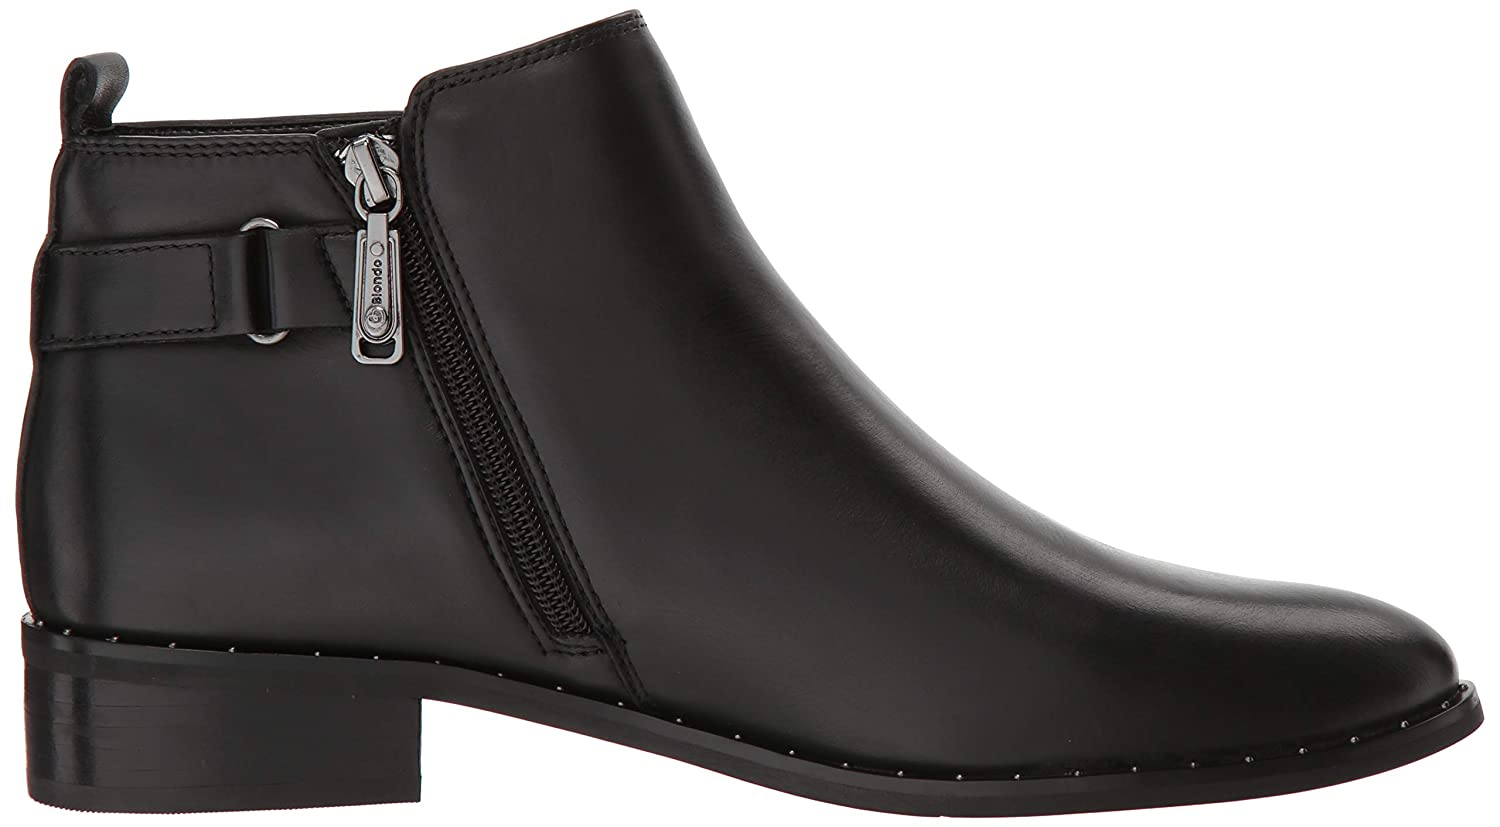 Blondo Women's Tami Ankle Boot B07DGXLTCW 5.5 B(M) US|Black US|Black US|Black Leather 9ba964